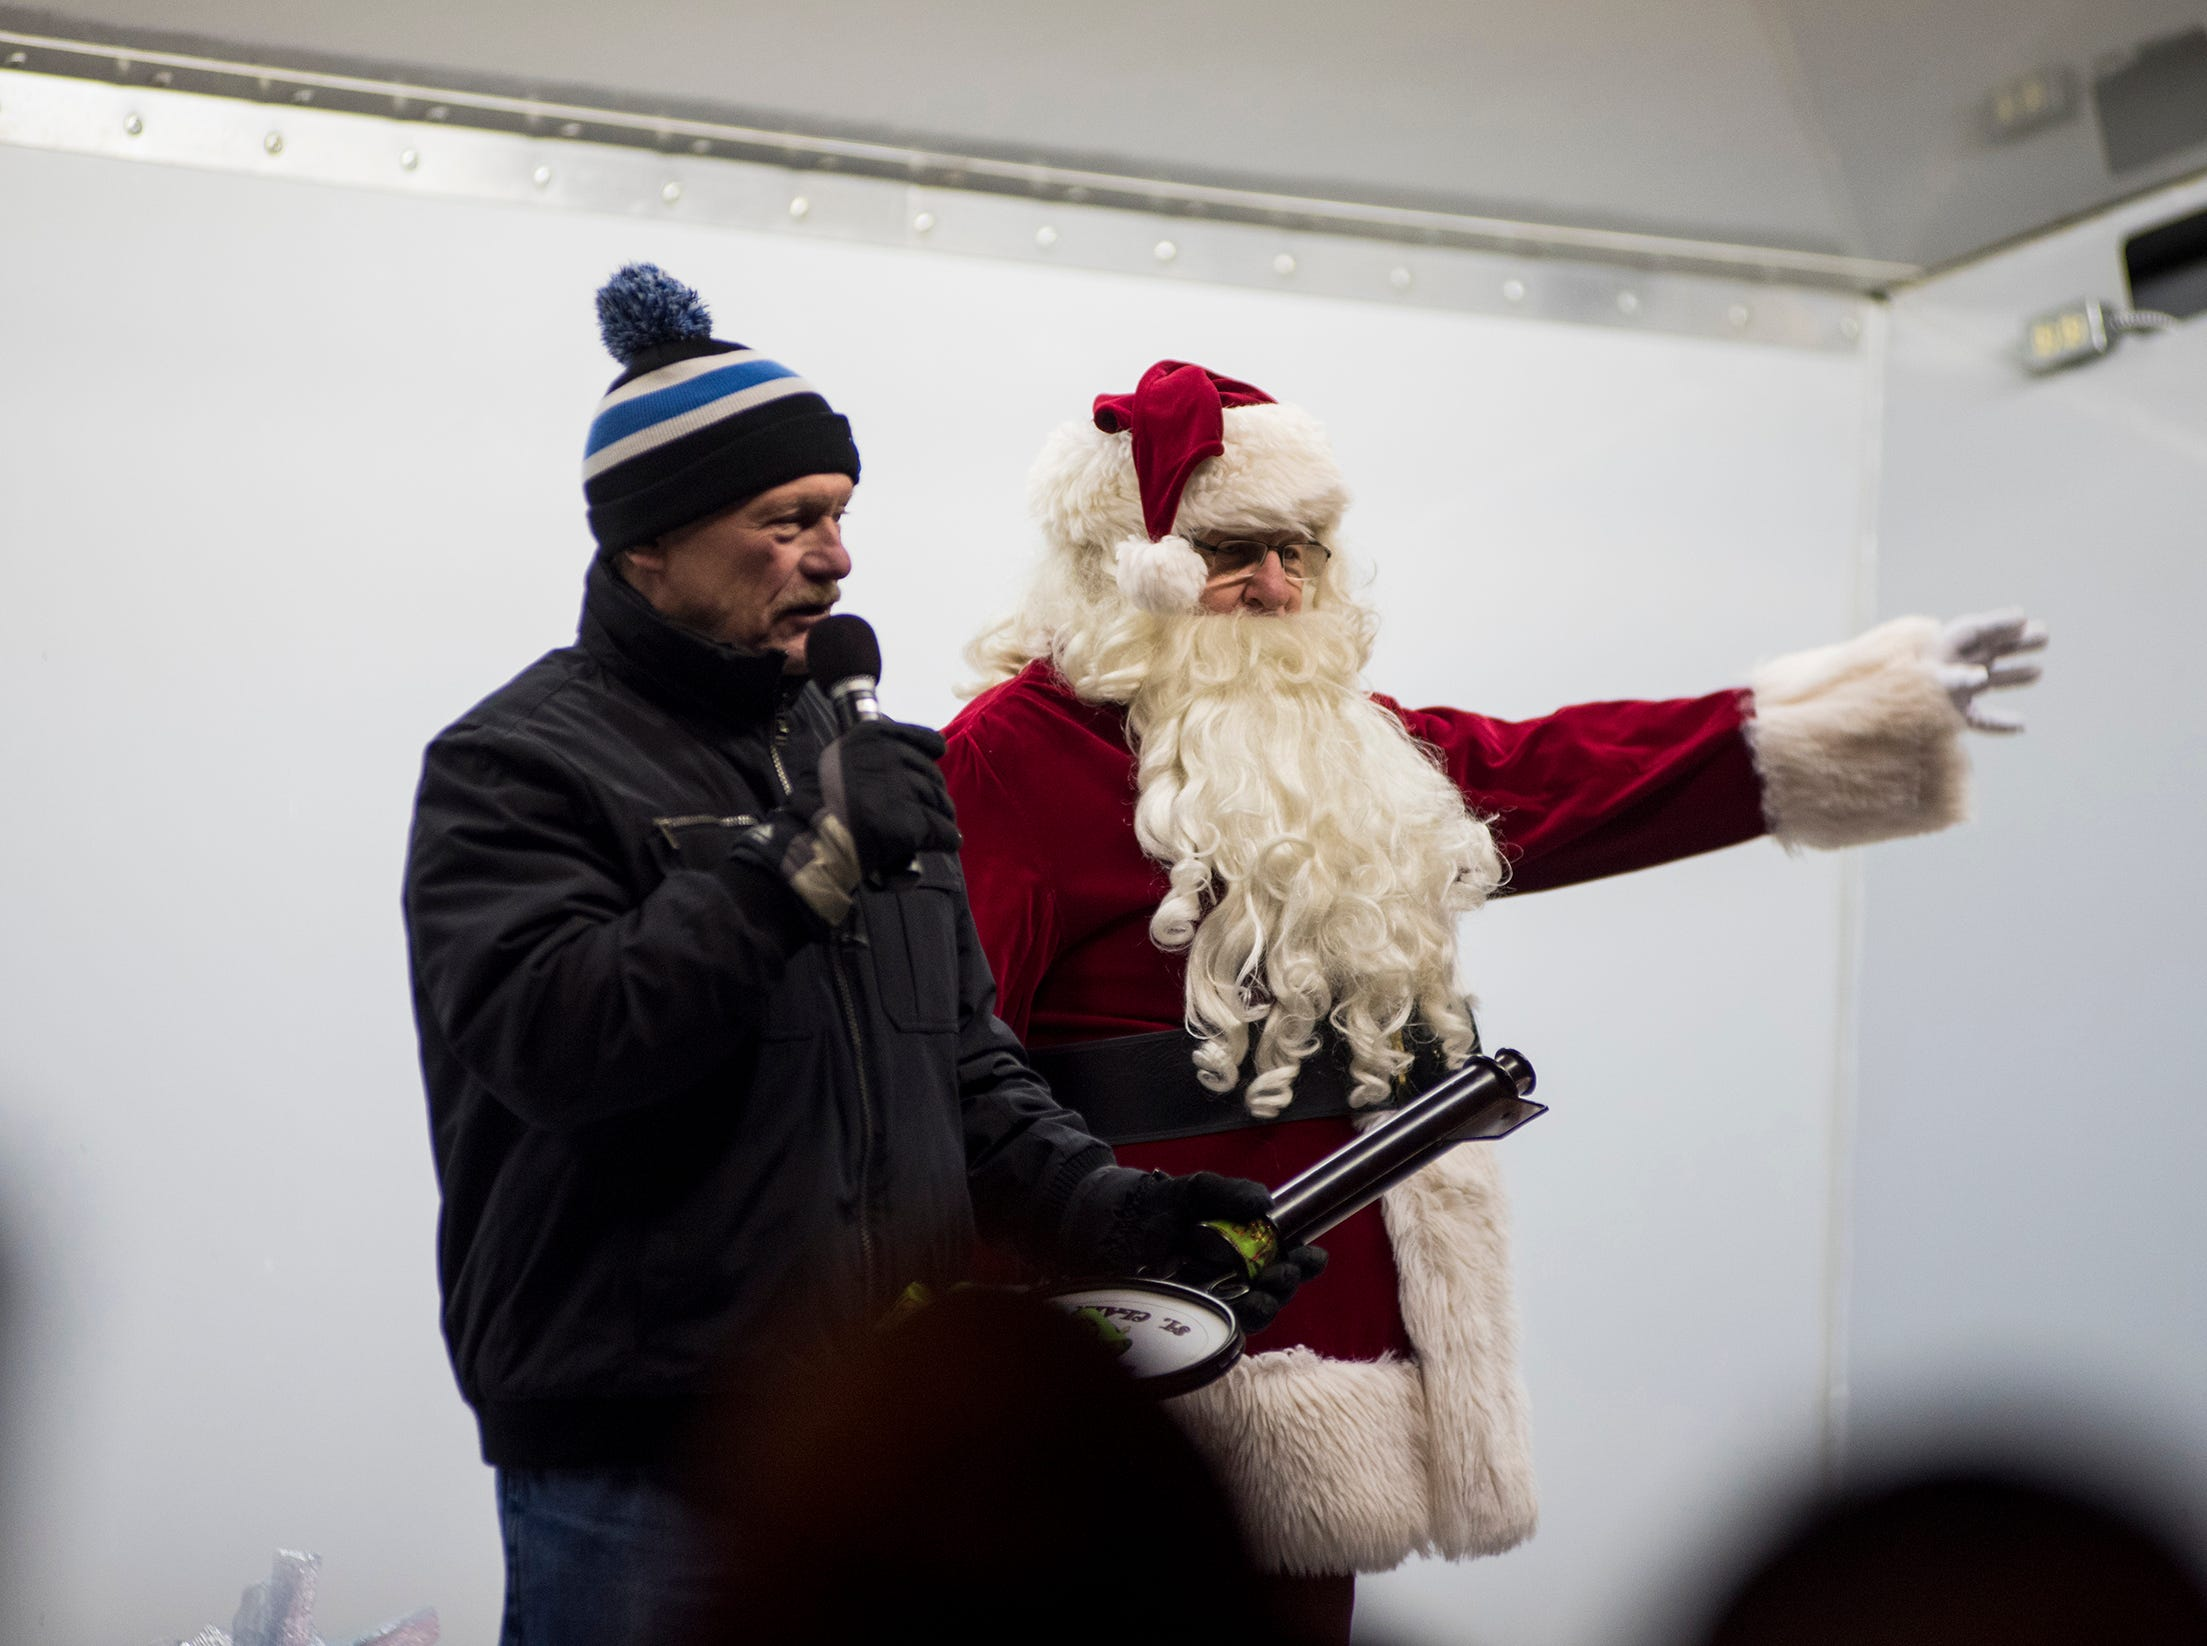 St. Clair Mayor Bill Cedar, left, presents Santa Claus with the key to the city Friday, Nov. 16, 2018 during a Christmas tree lightiing ceremony in St. Clair.